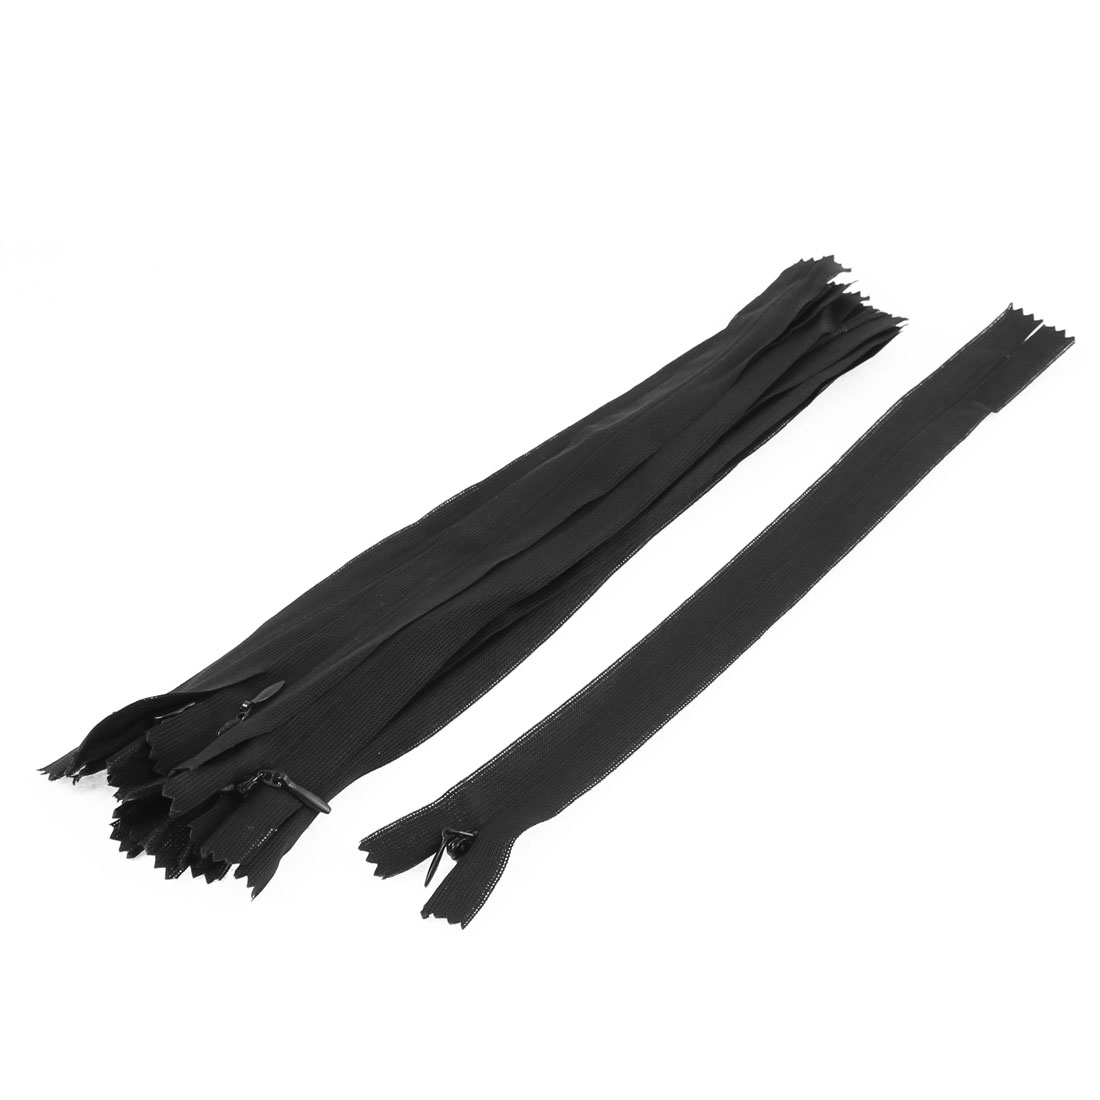 Clothes Invisible Nylon Coil Zippers Tailor Sewing Craft Tool Black 25cm 10 Pcs